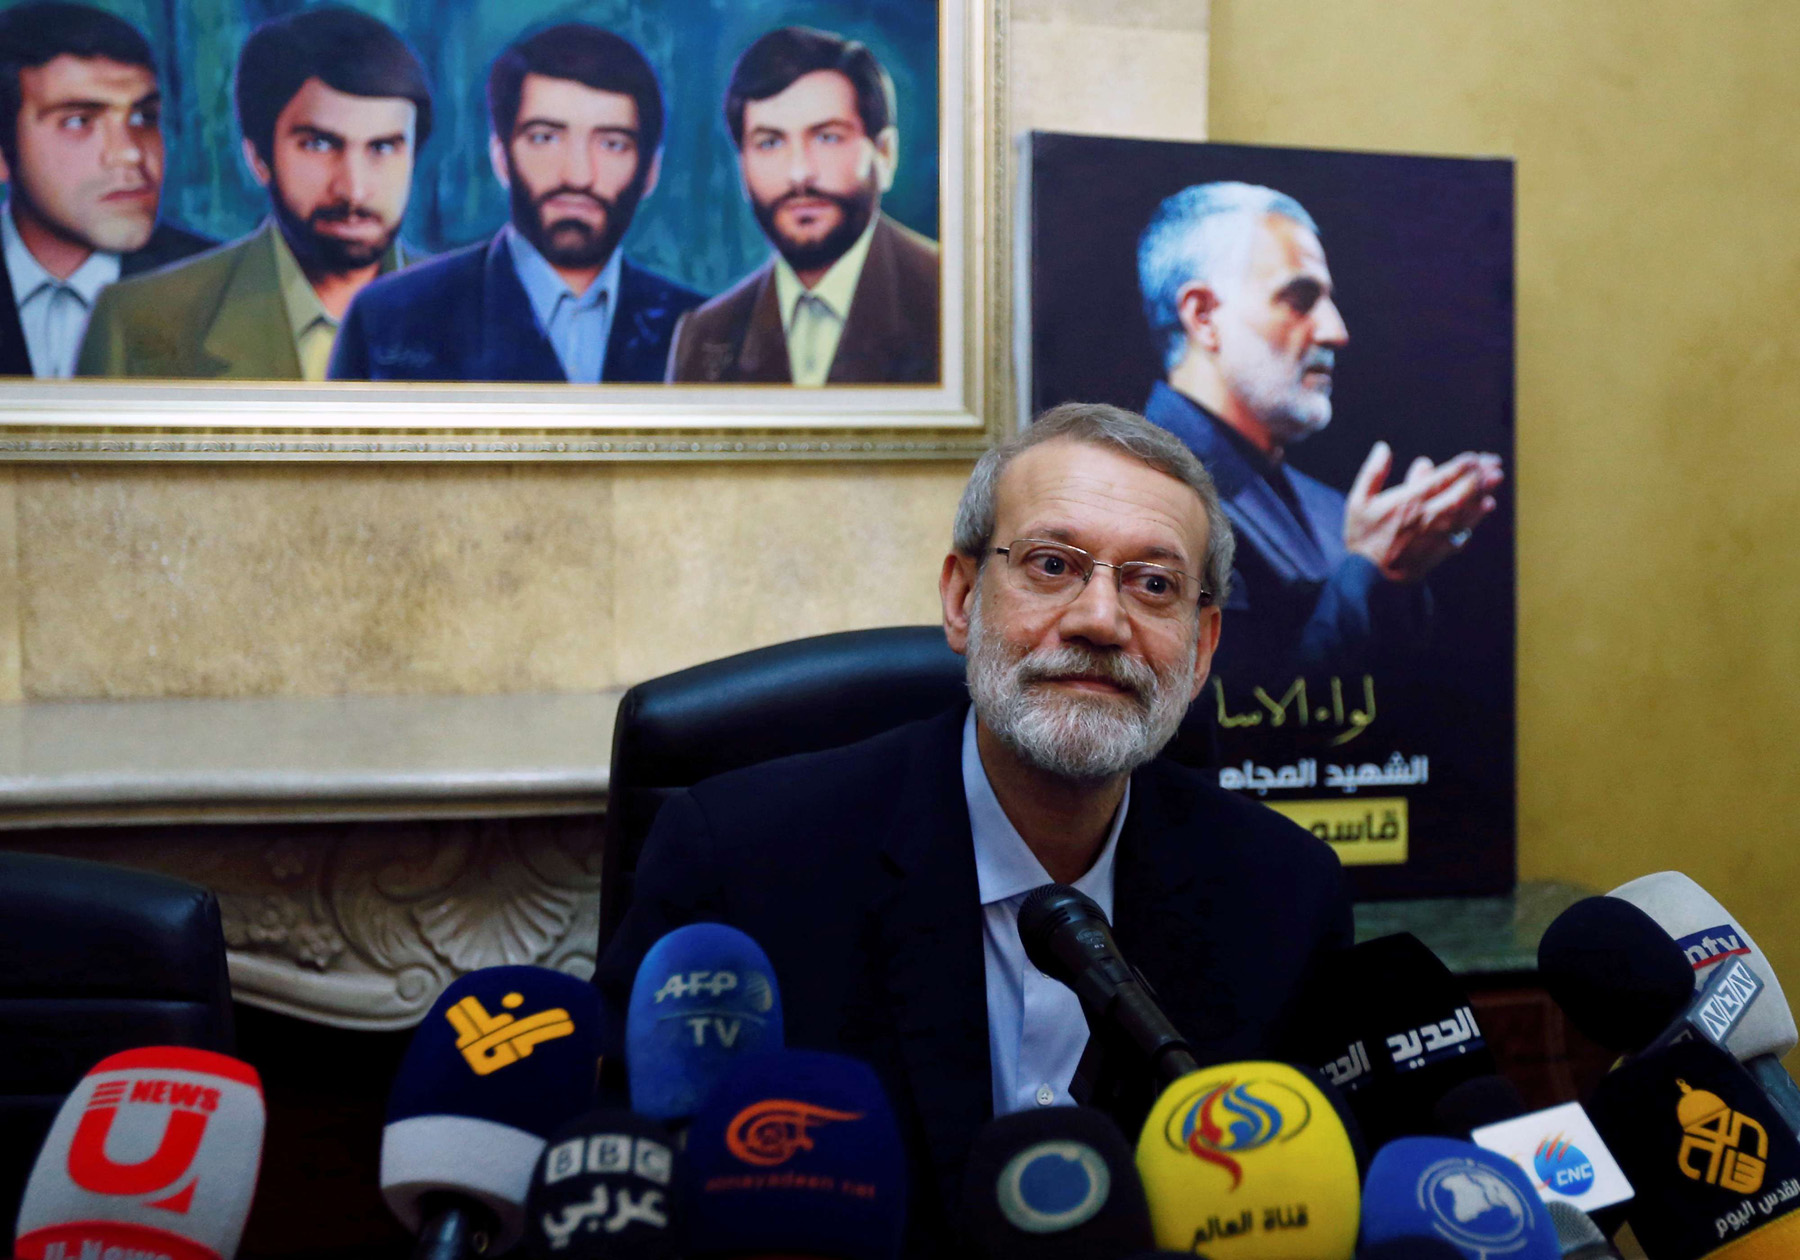 Iranian parliament speaker Ali Larijani attends a news conference at the Iranian embassy in Beirut's southern suburbs, Februray 17. (Reuters)